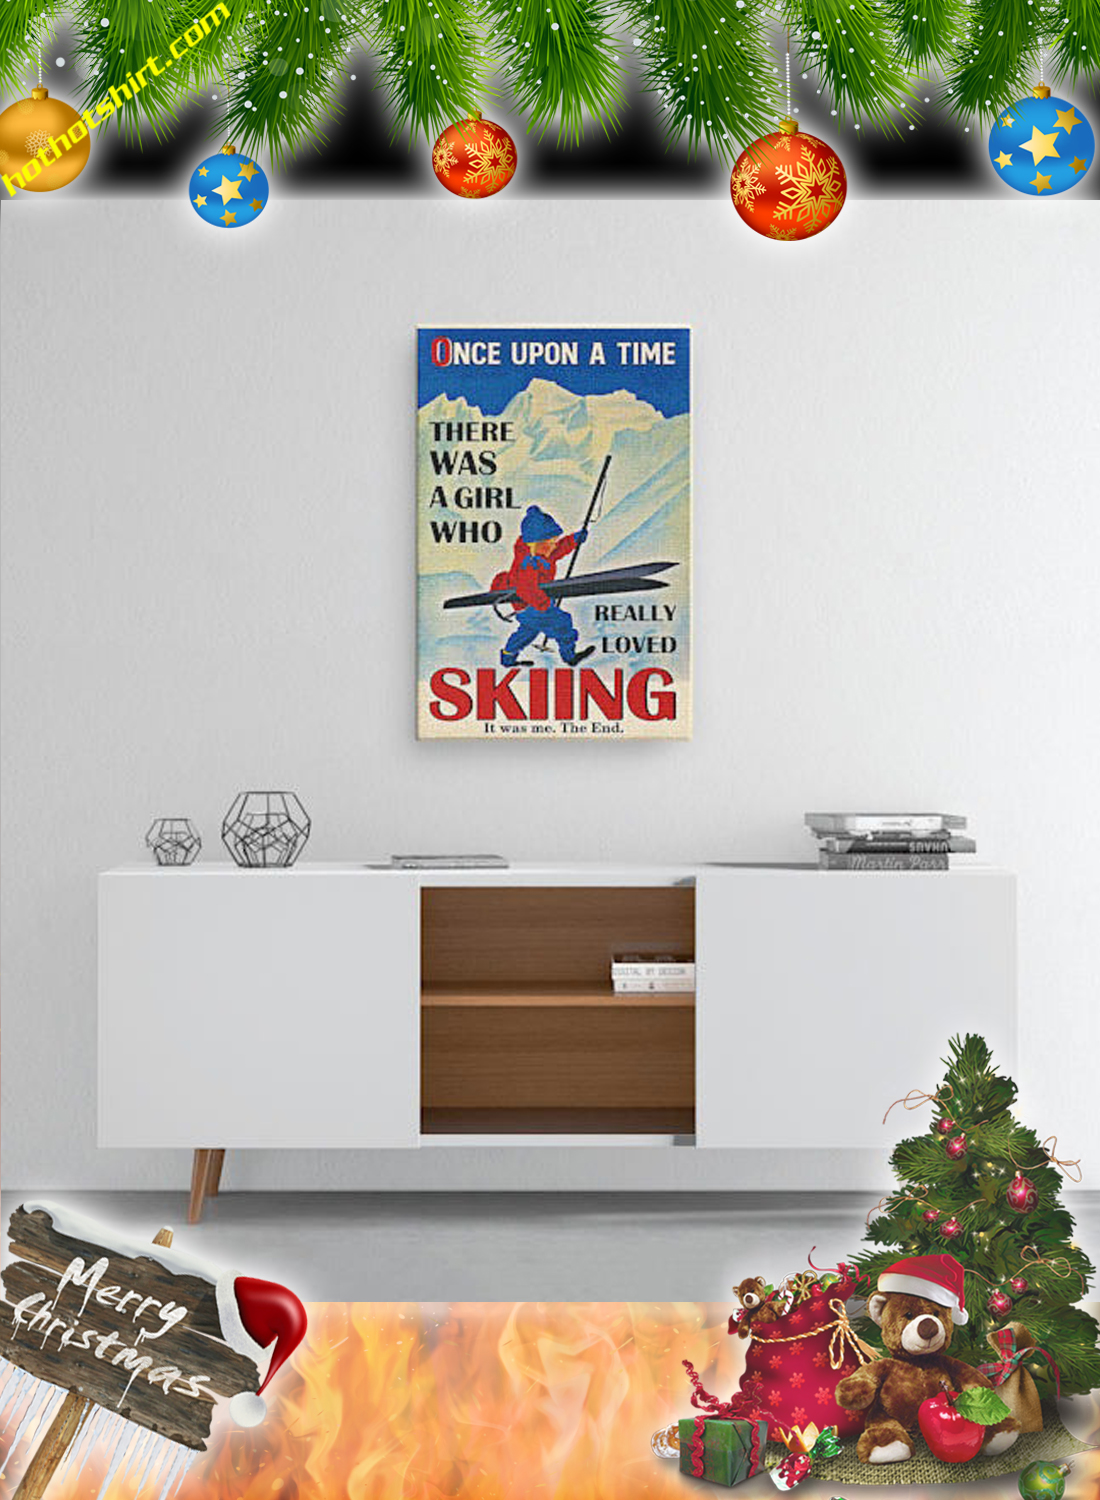 There was a girl who really loved skiing it was me the end canvas print and poster 1